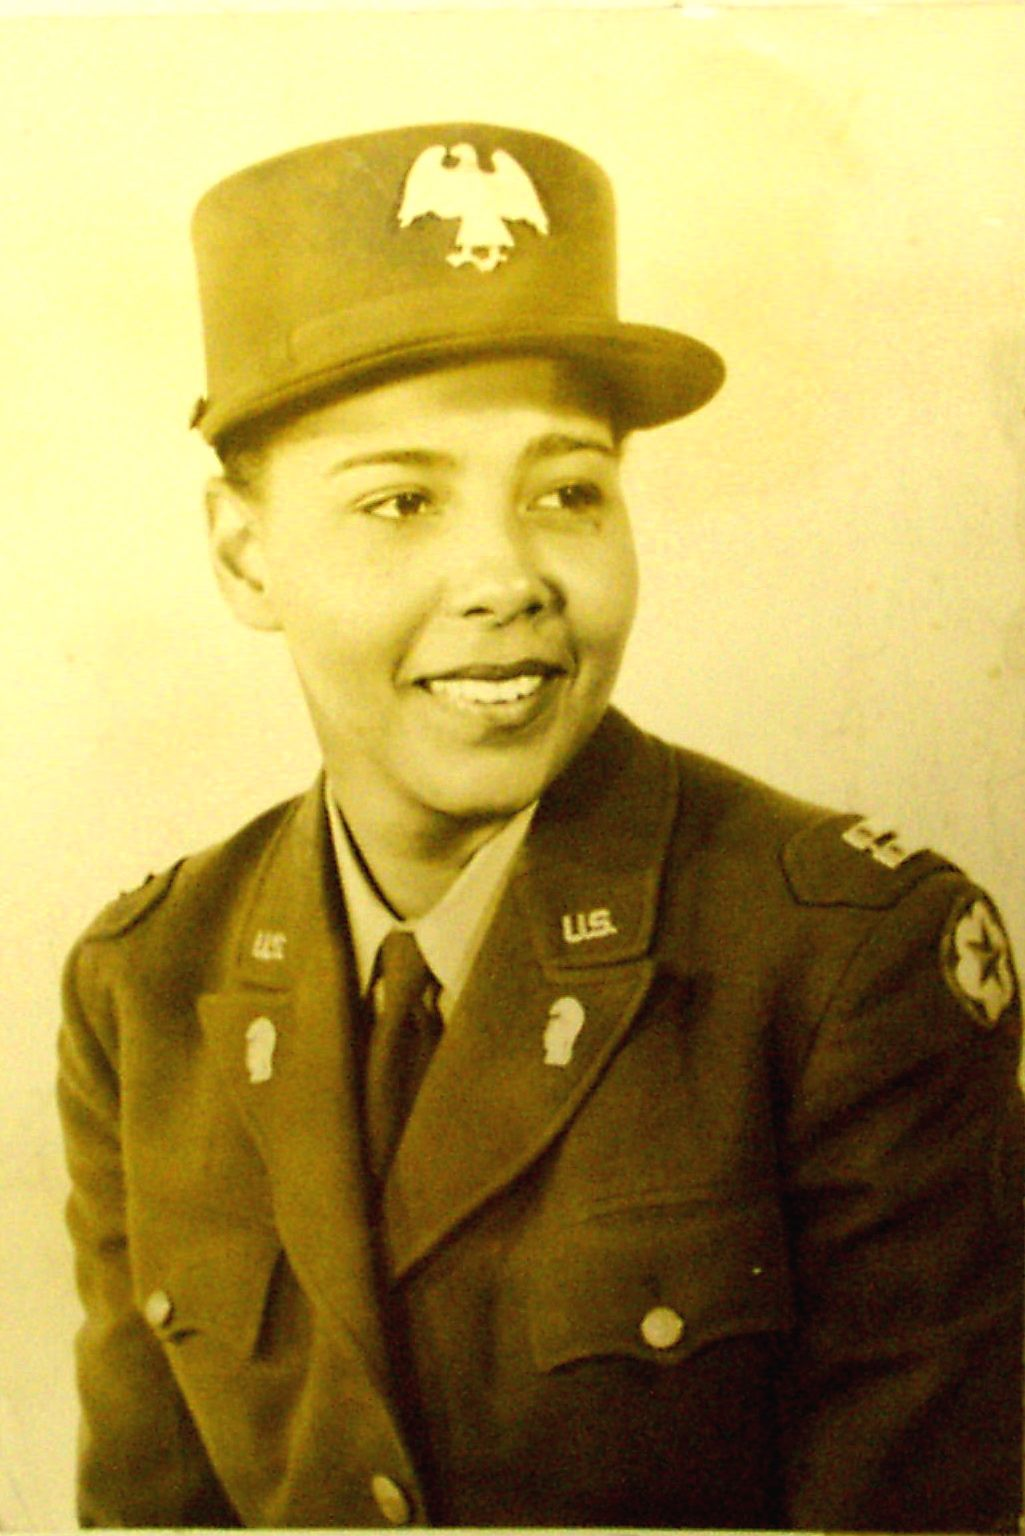 Charity Adams, the first African American commissioned officer in the Women's Army Auxiliary Corps in 1942. She served in the Army for four years and held the rank of Lt. Colonel at the time of her release from active duty.